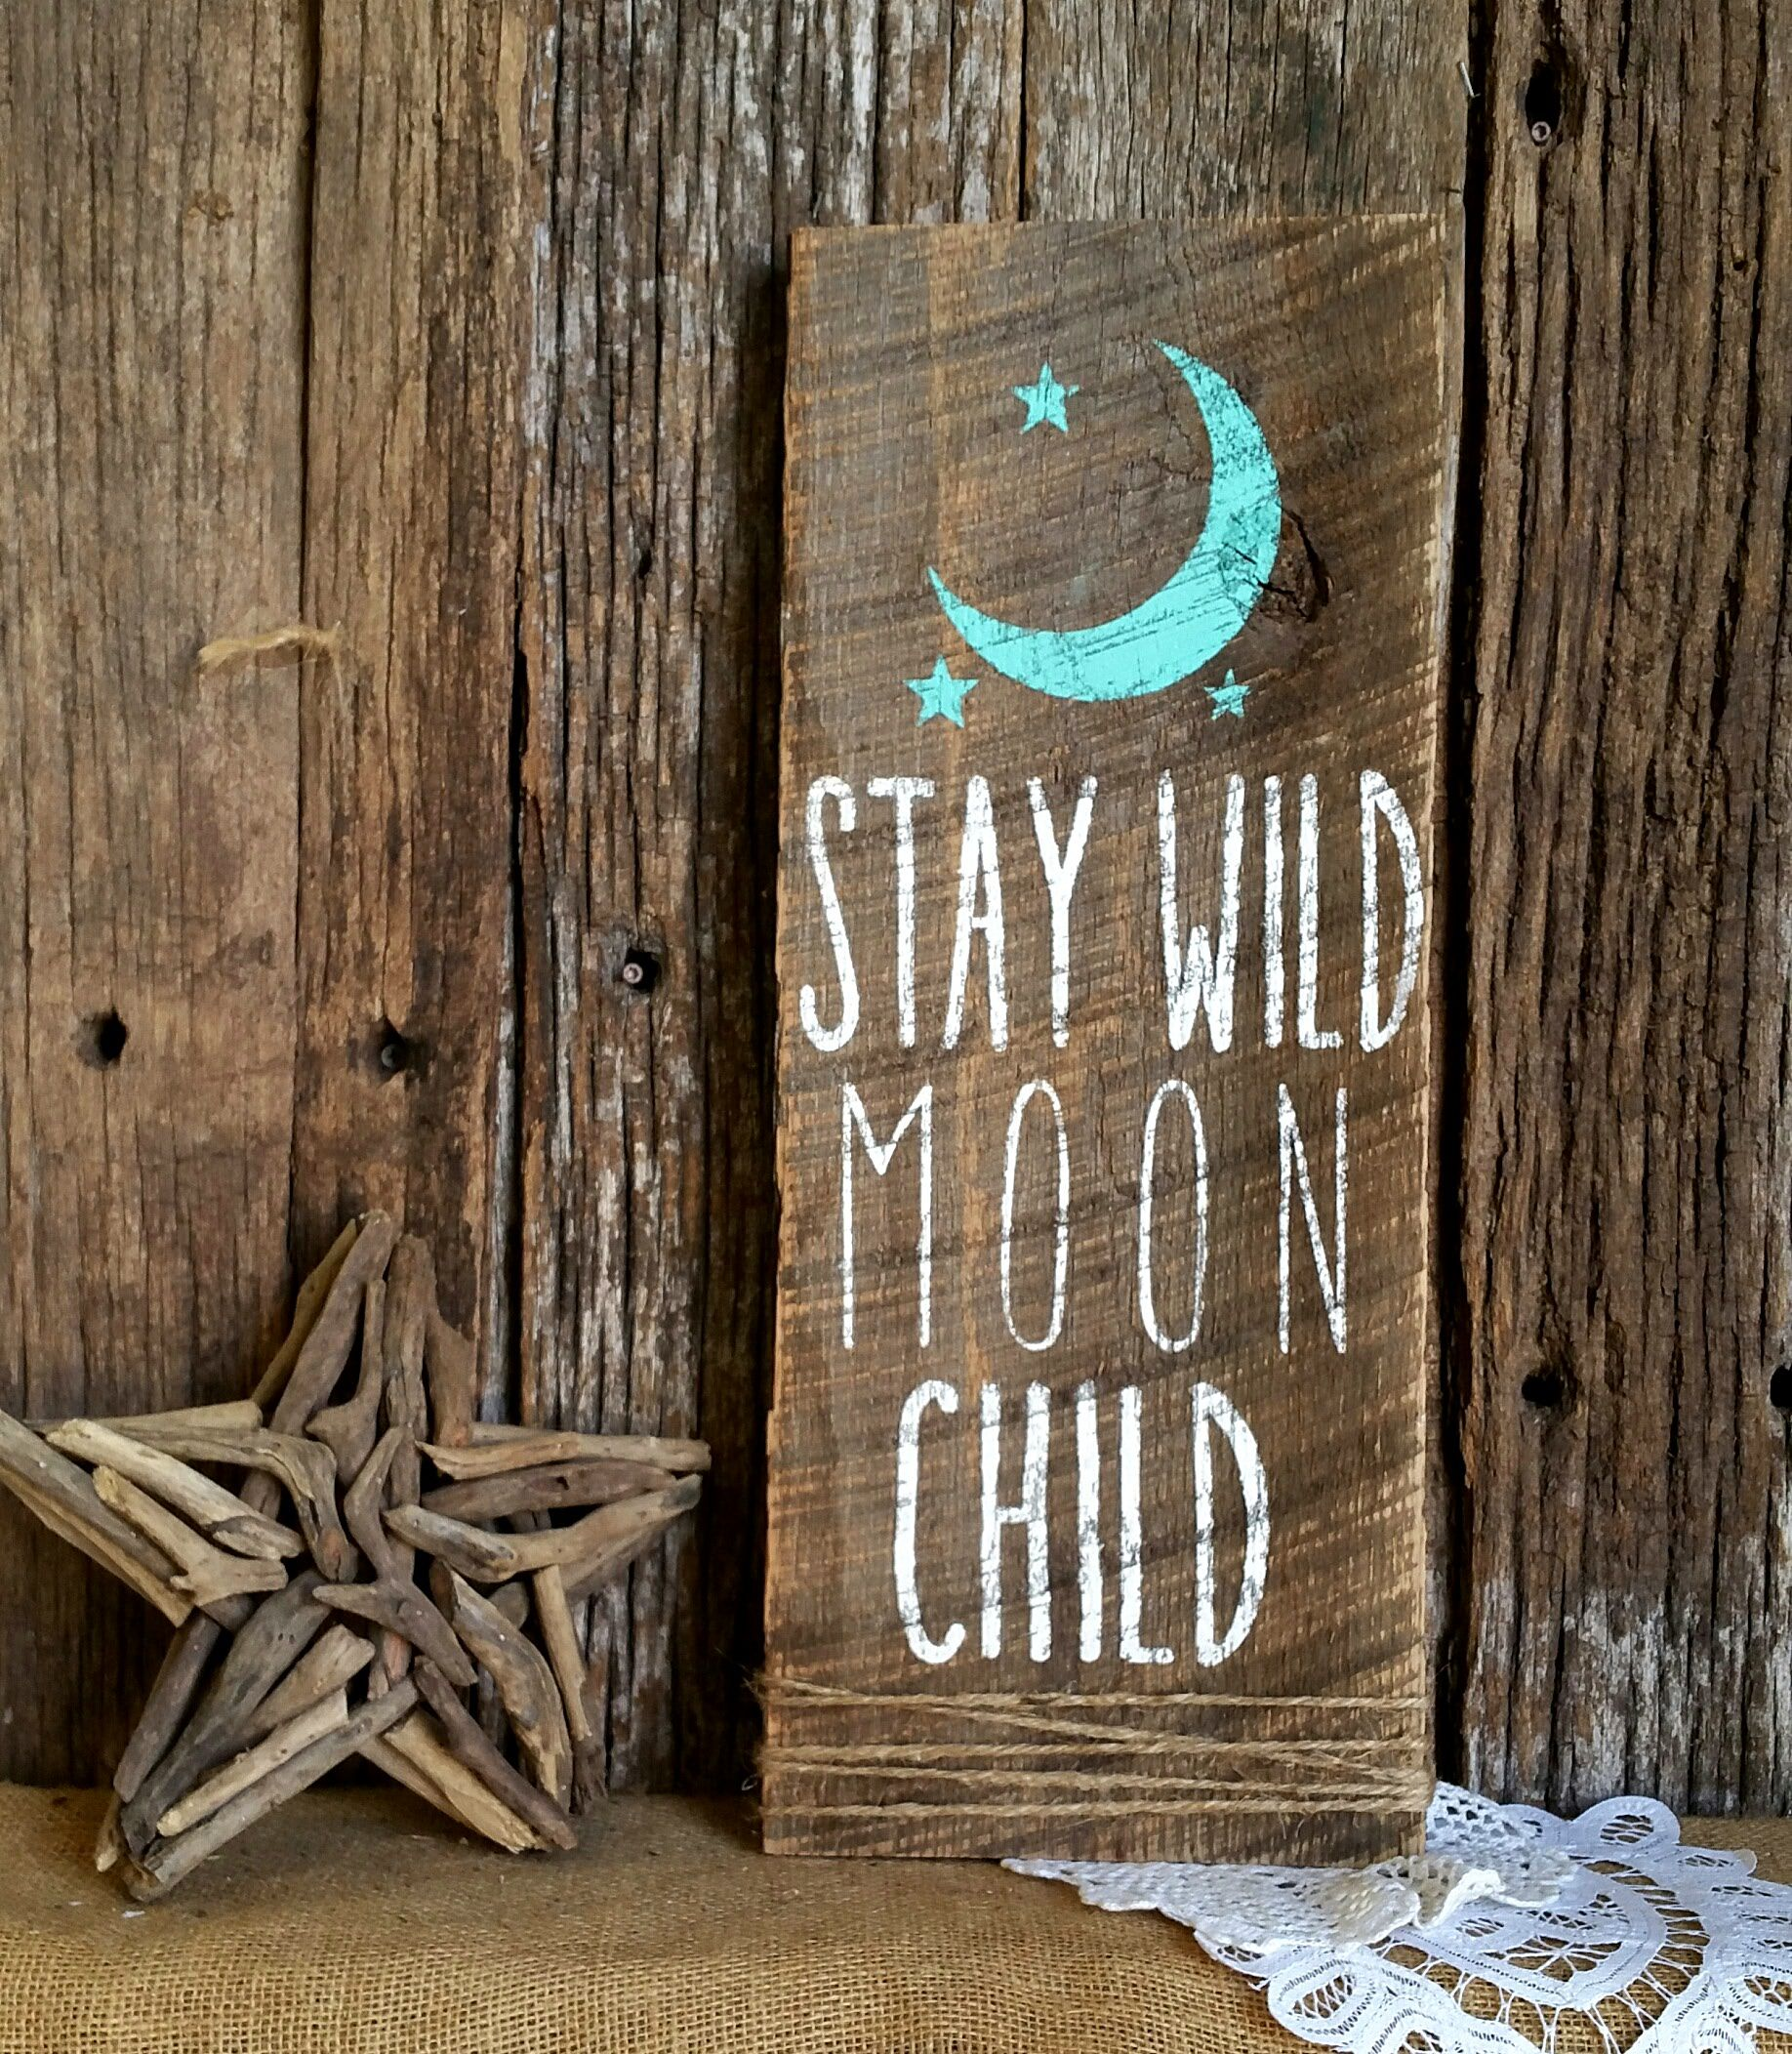 Stay Wild Moon Child Nursery Decor Woodland Rustic Chic Home Barnwood Sign